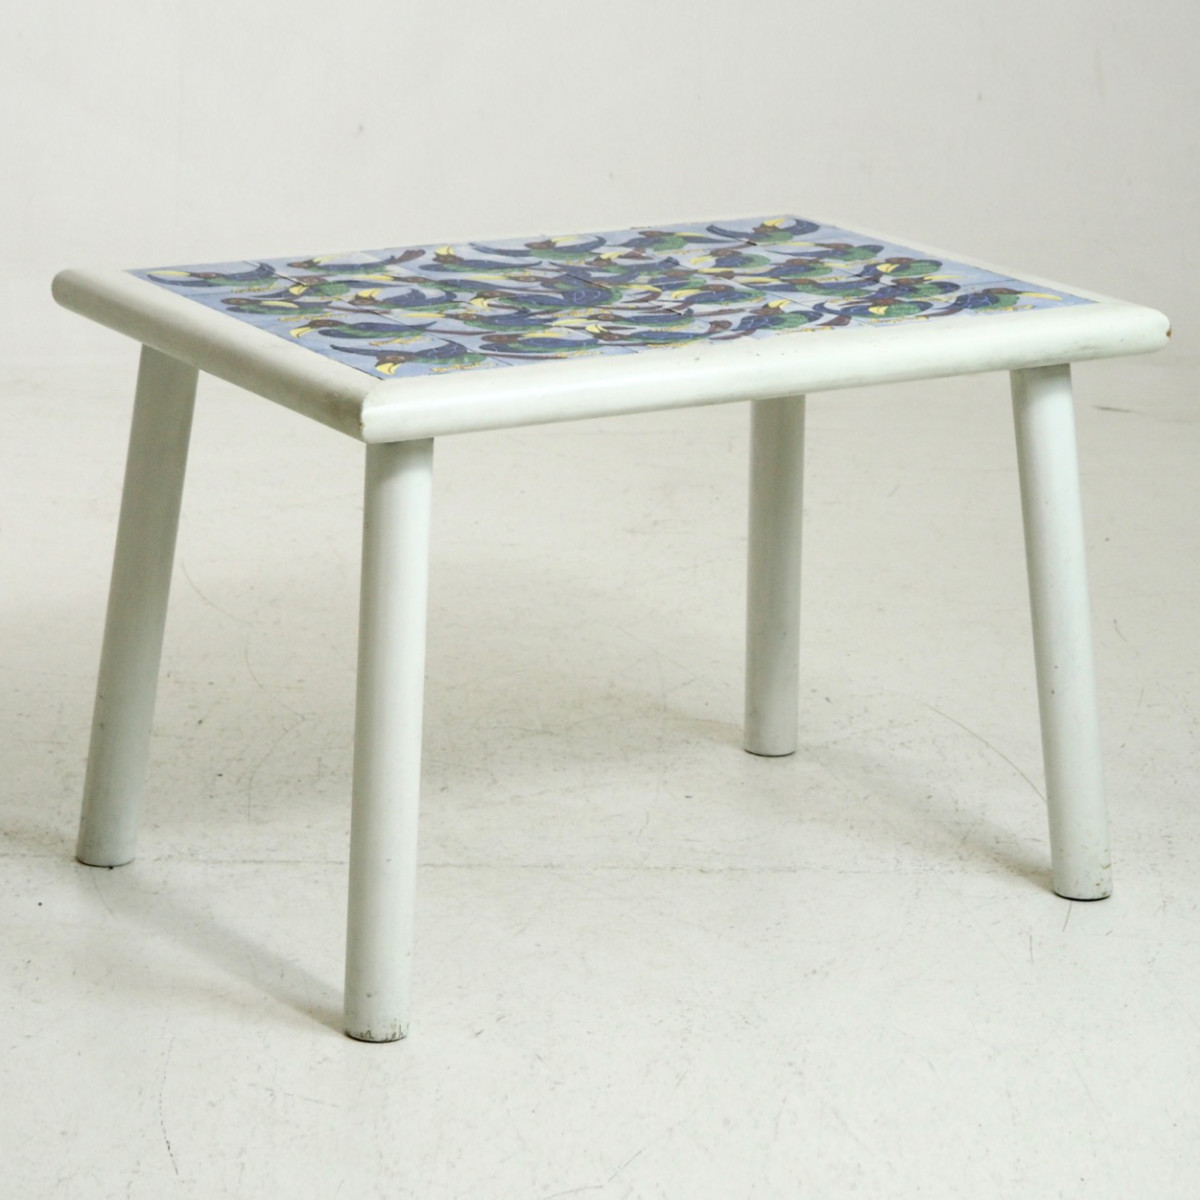 Danish tile-top table, signed at '57. - € 3.500